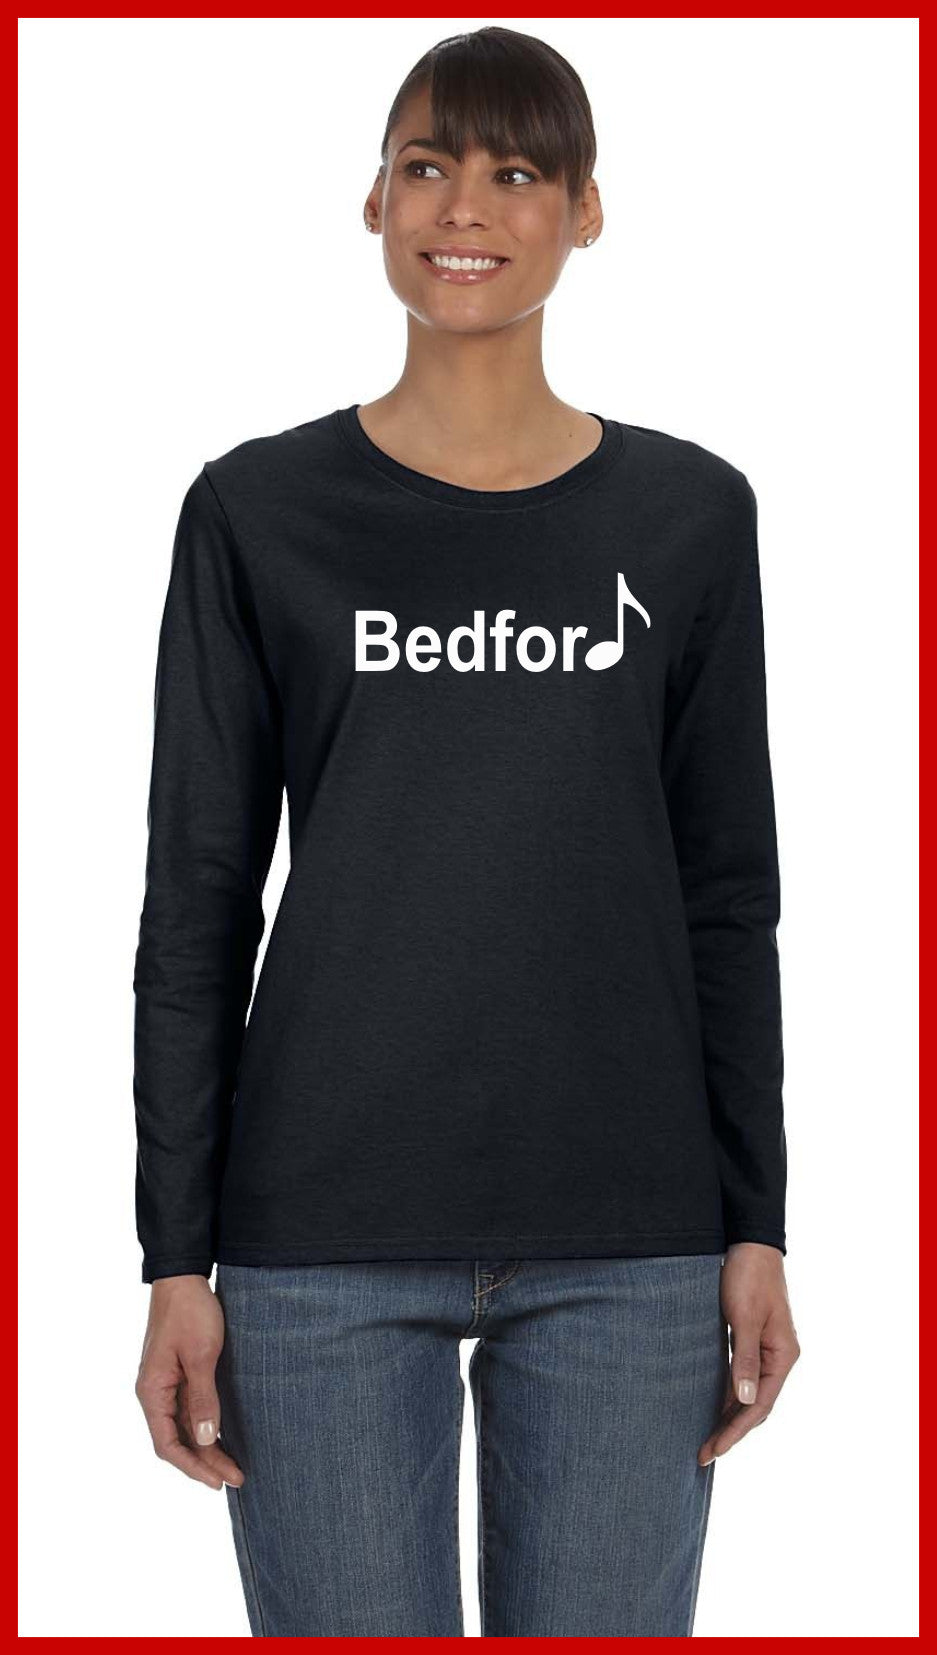 Bedford Pep Band LS Tees